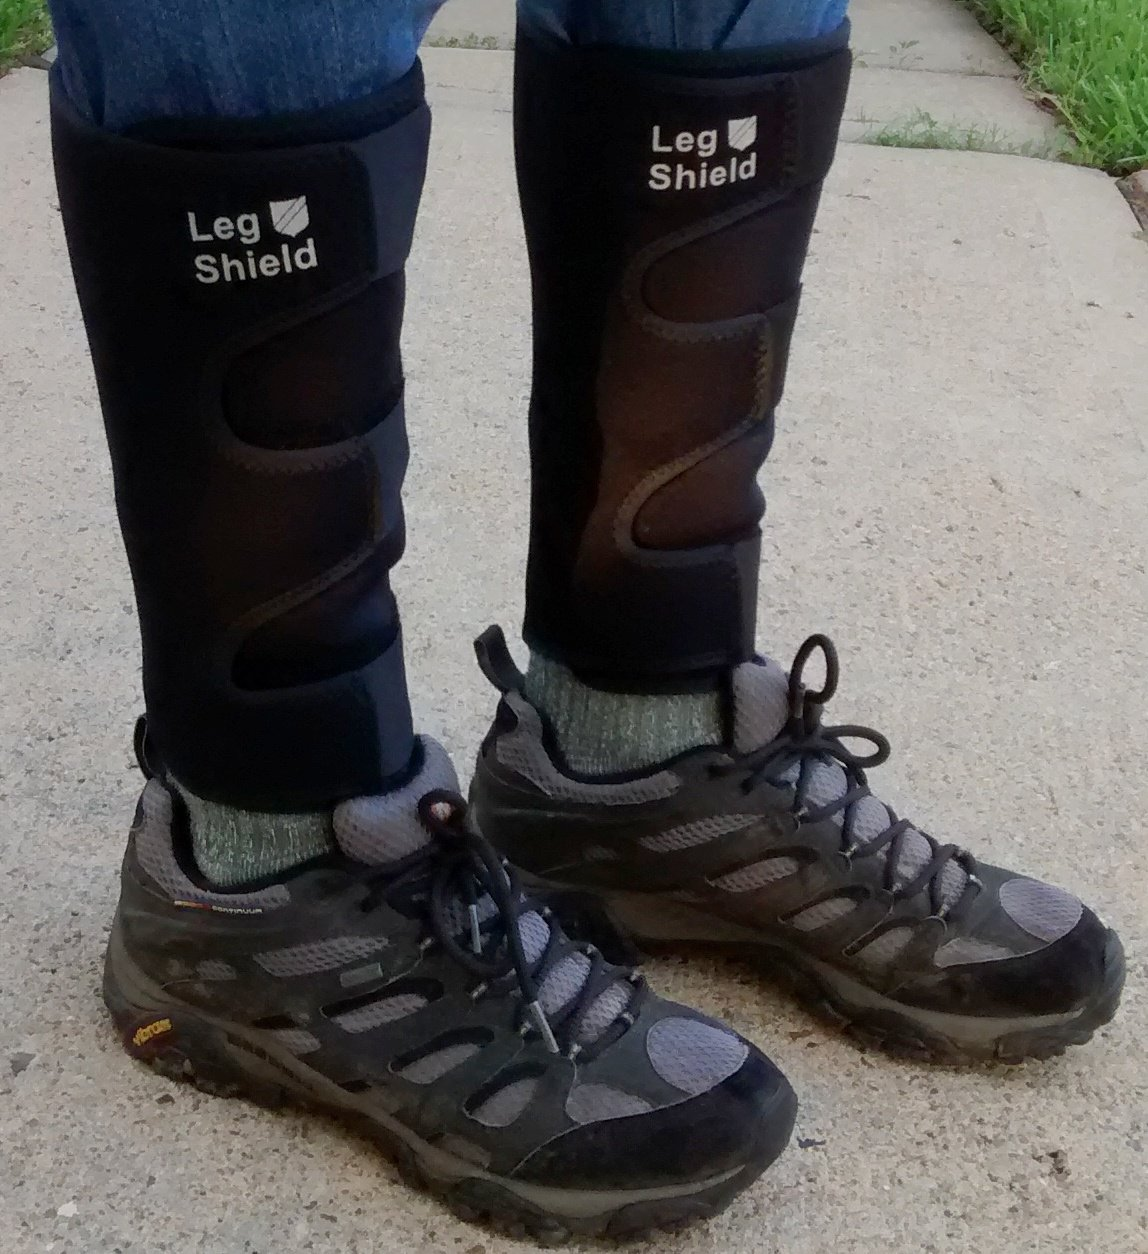 Neoprene Leg Gaiters (Pair) - Unique Hook and Loop Fastener Design for Easy On/Off - For Outdoors, Hunting, Hiking, Walking, and General Shin/Calf Protection - Windproof, Water Resistant, Snug Fit by Leg Shield (Image #2)